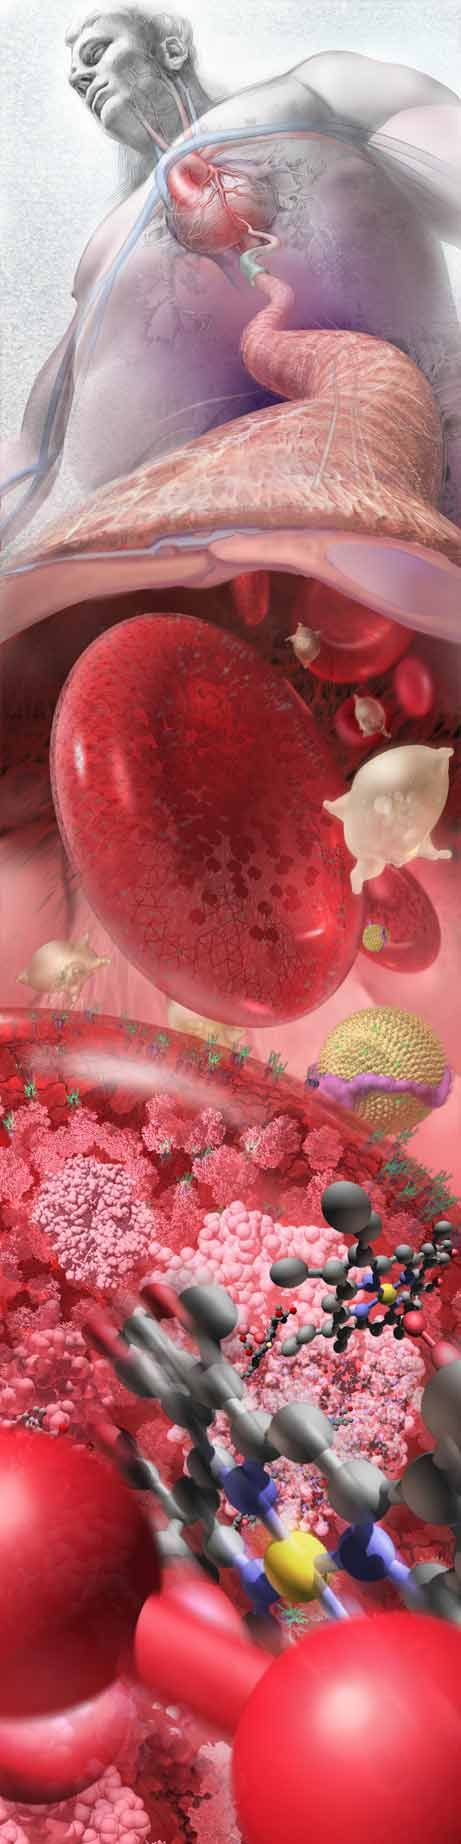 PHOTOS: Best Science Images of 2008  A look inside the human circulatory system